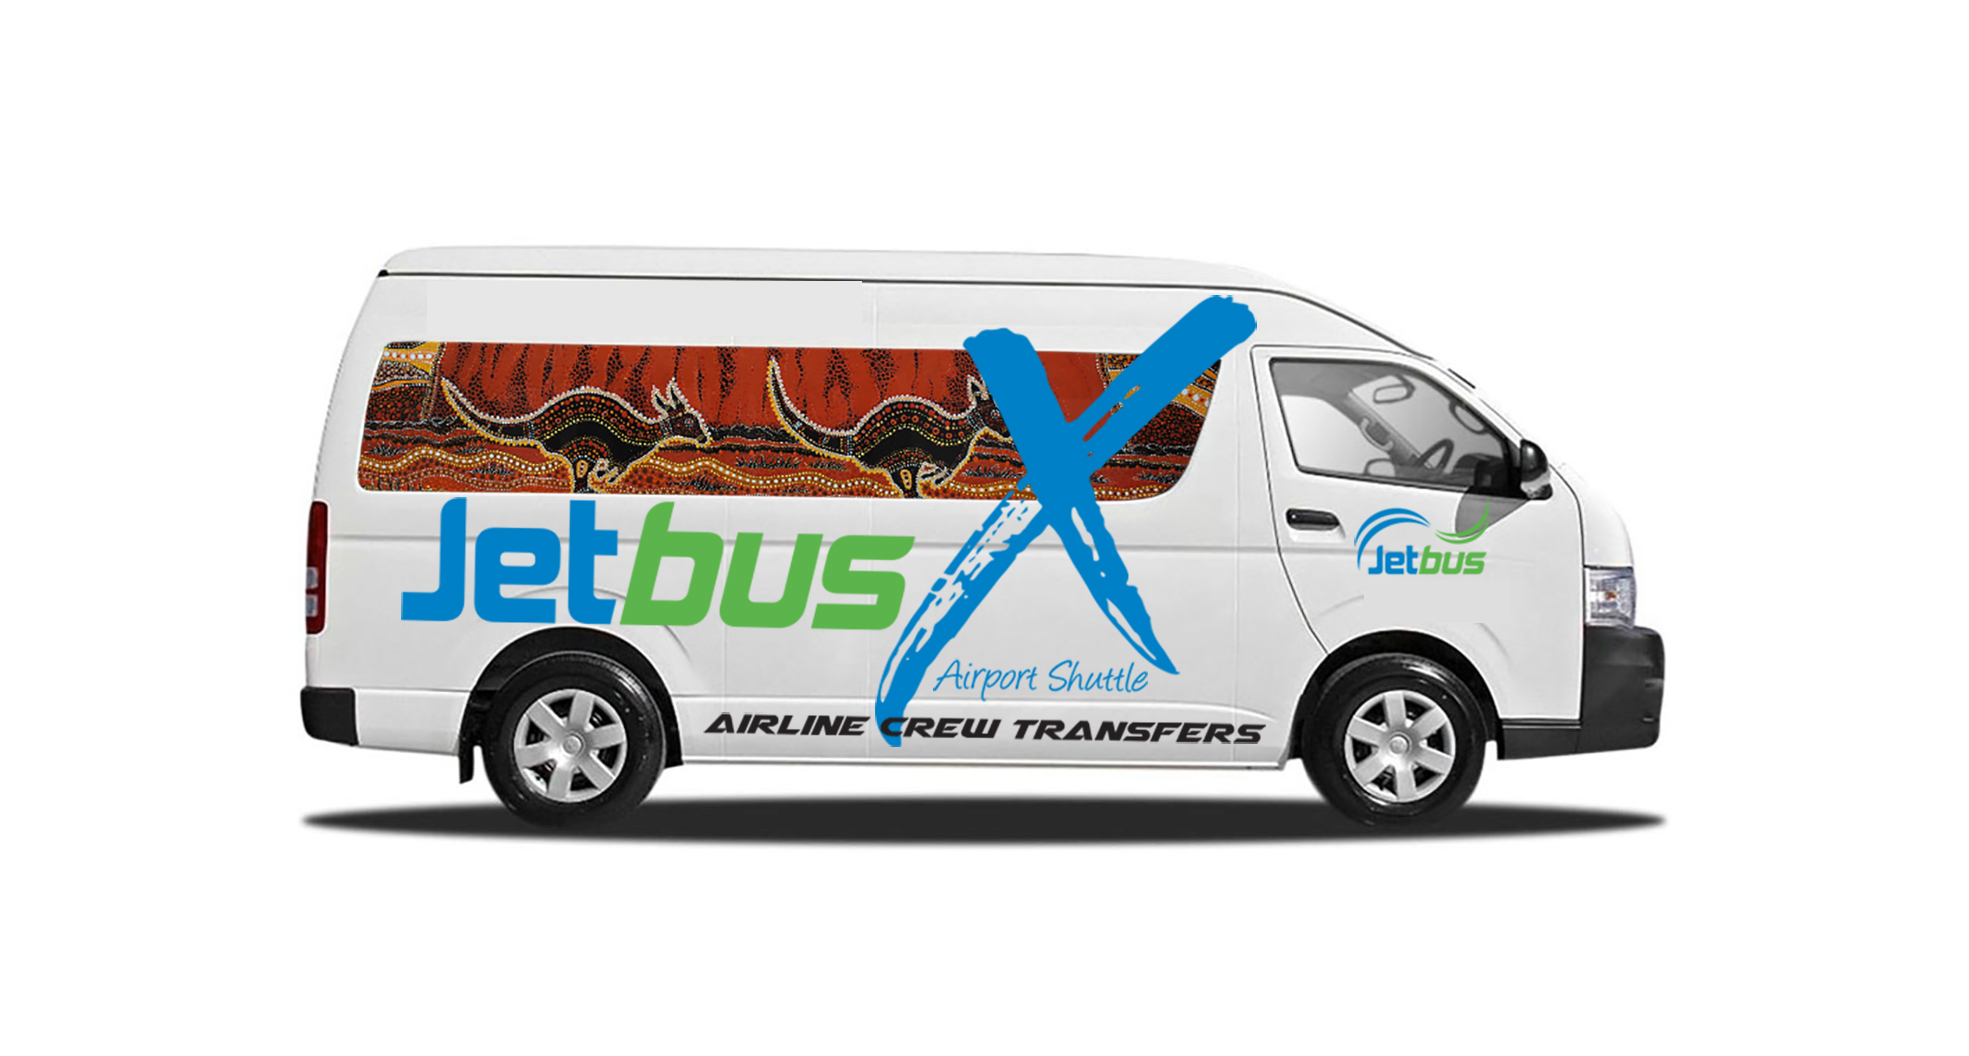 Jetbus X Airport Shuttle service photo